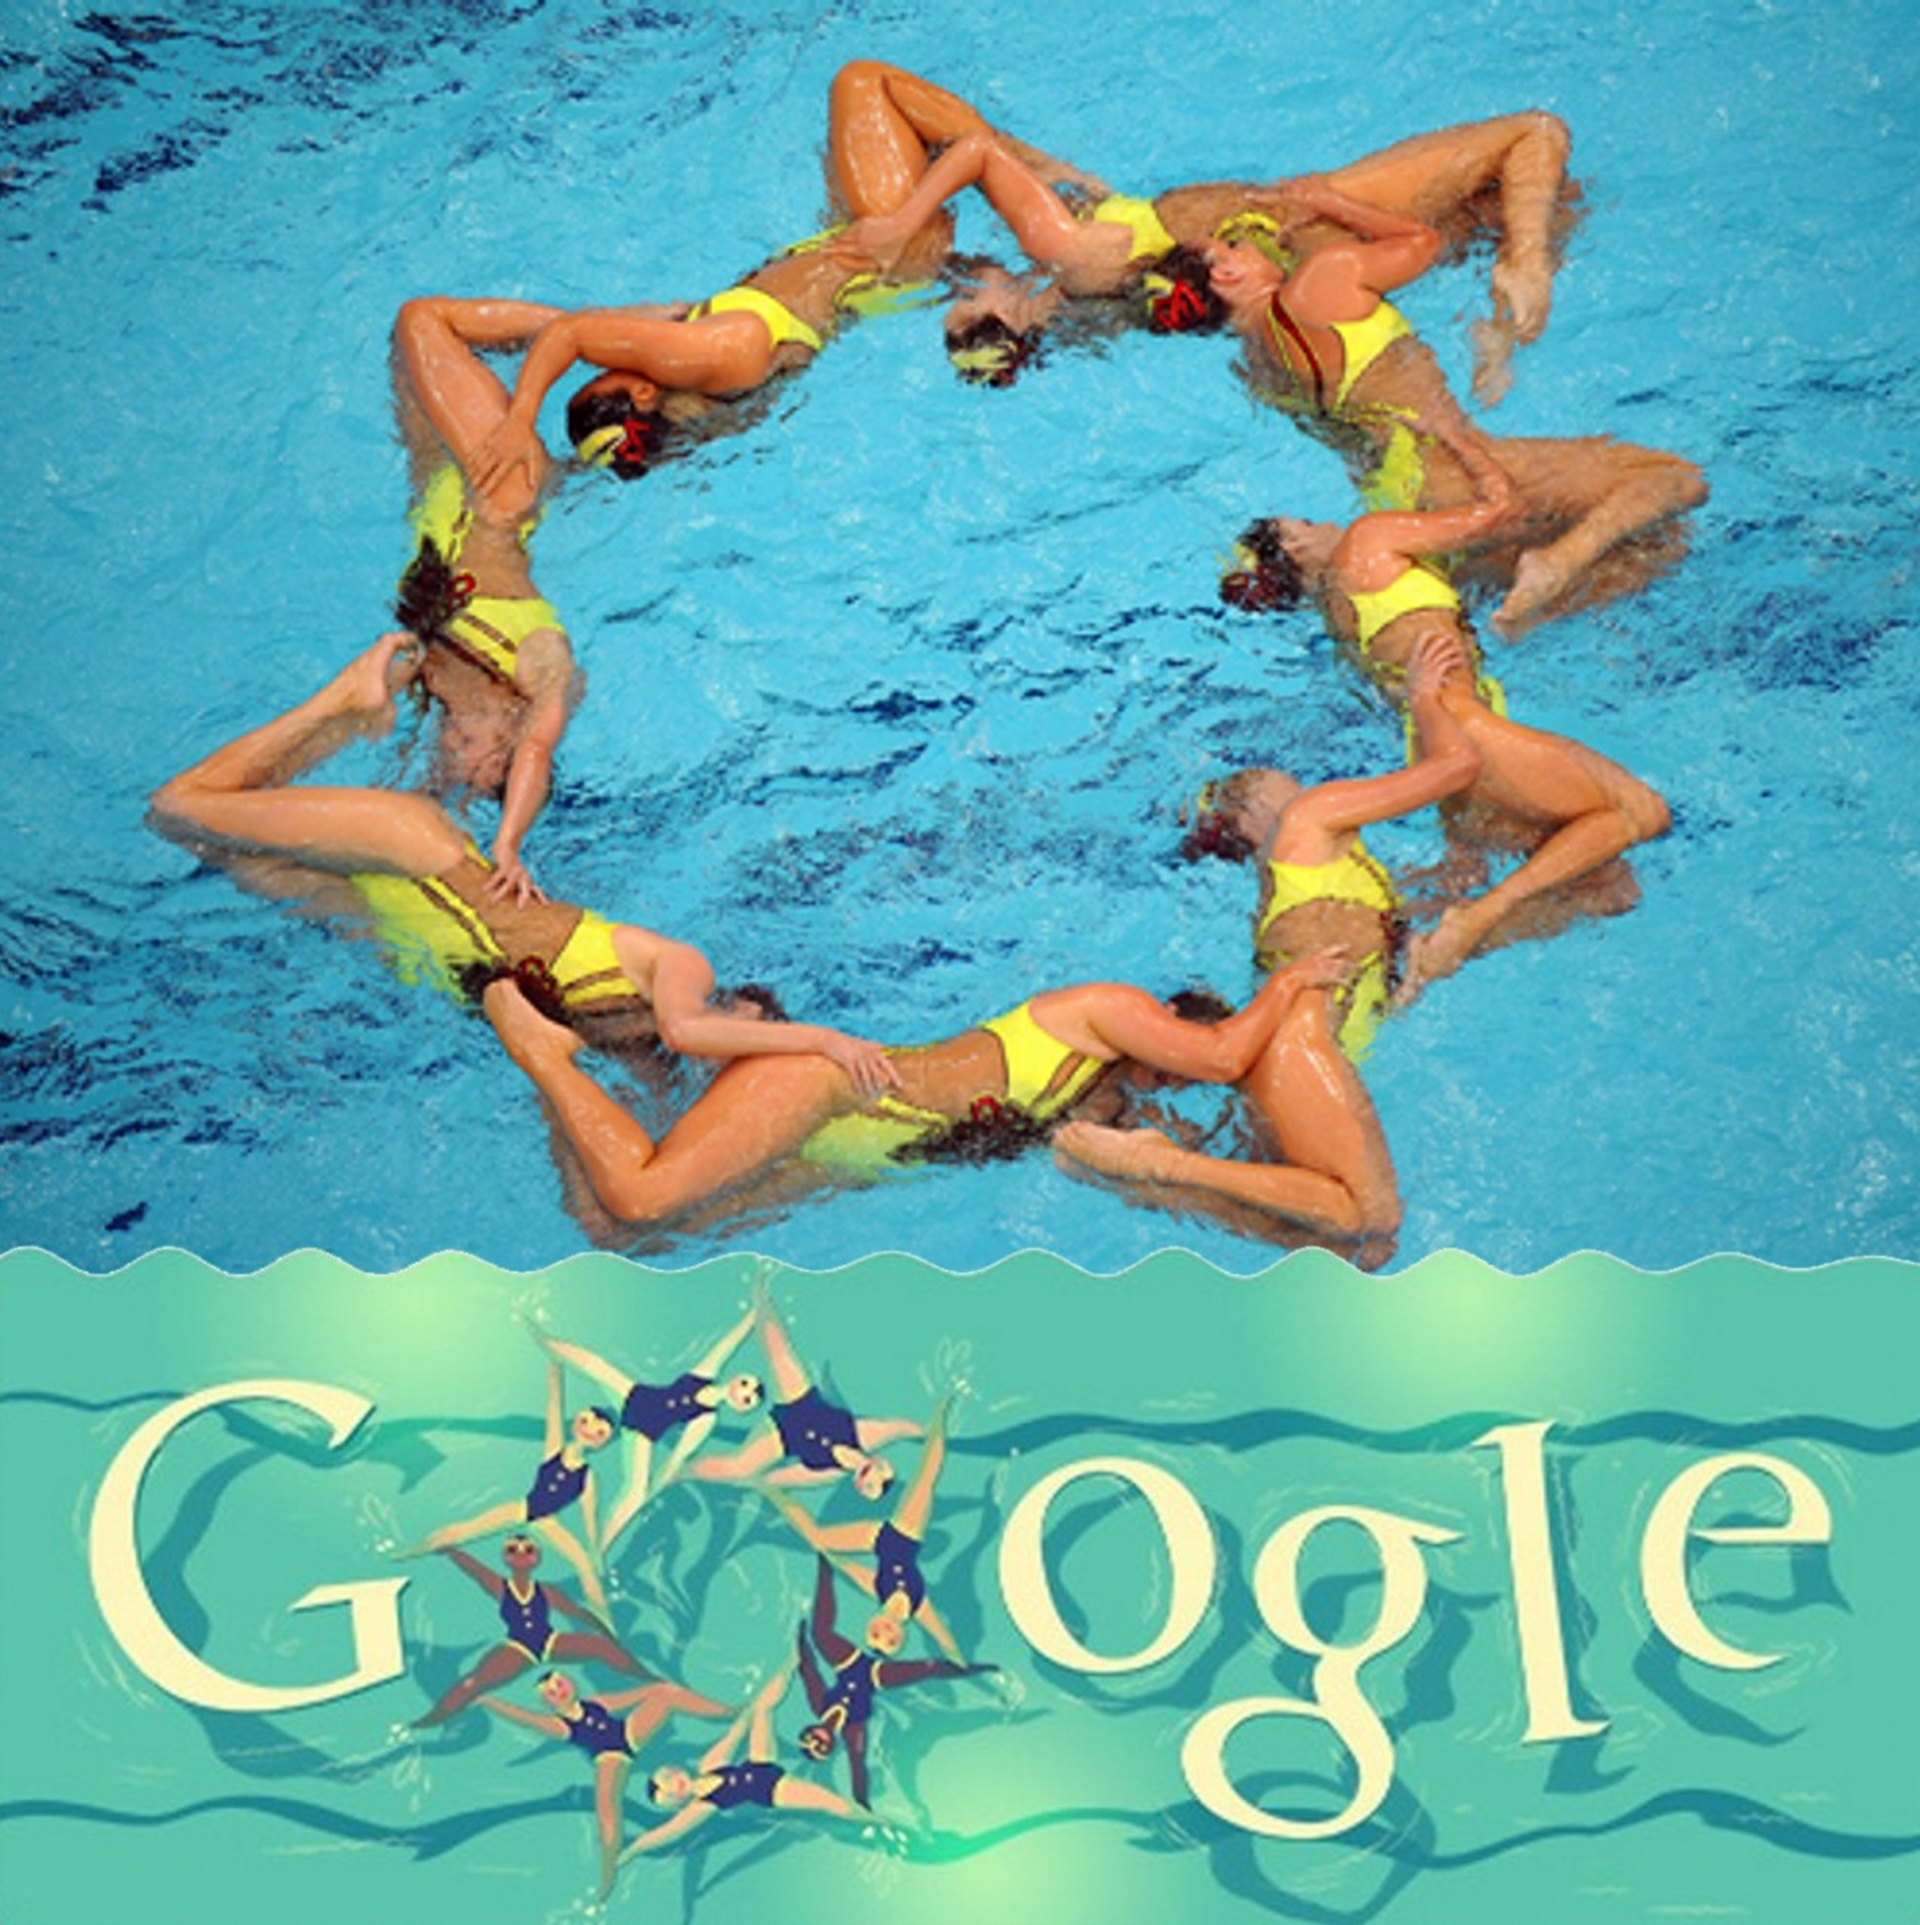 London 2012 synchronized swimming